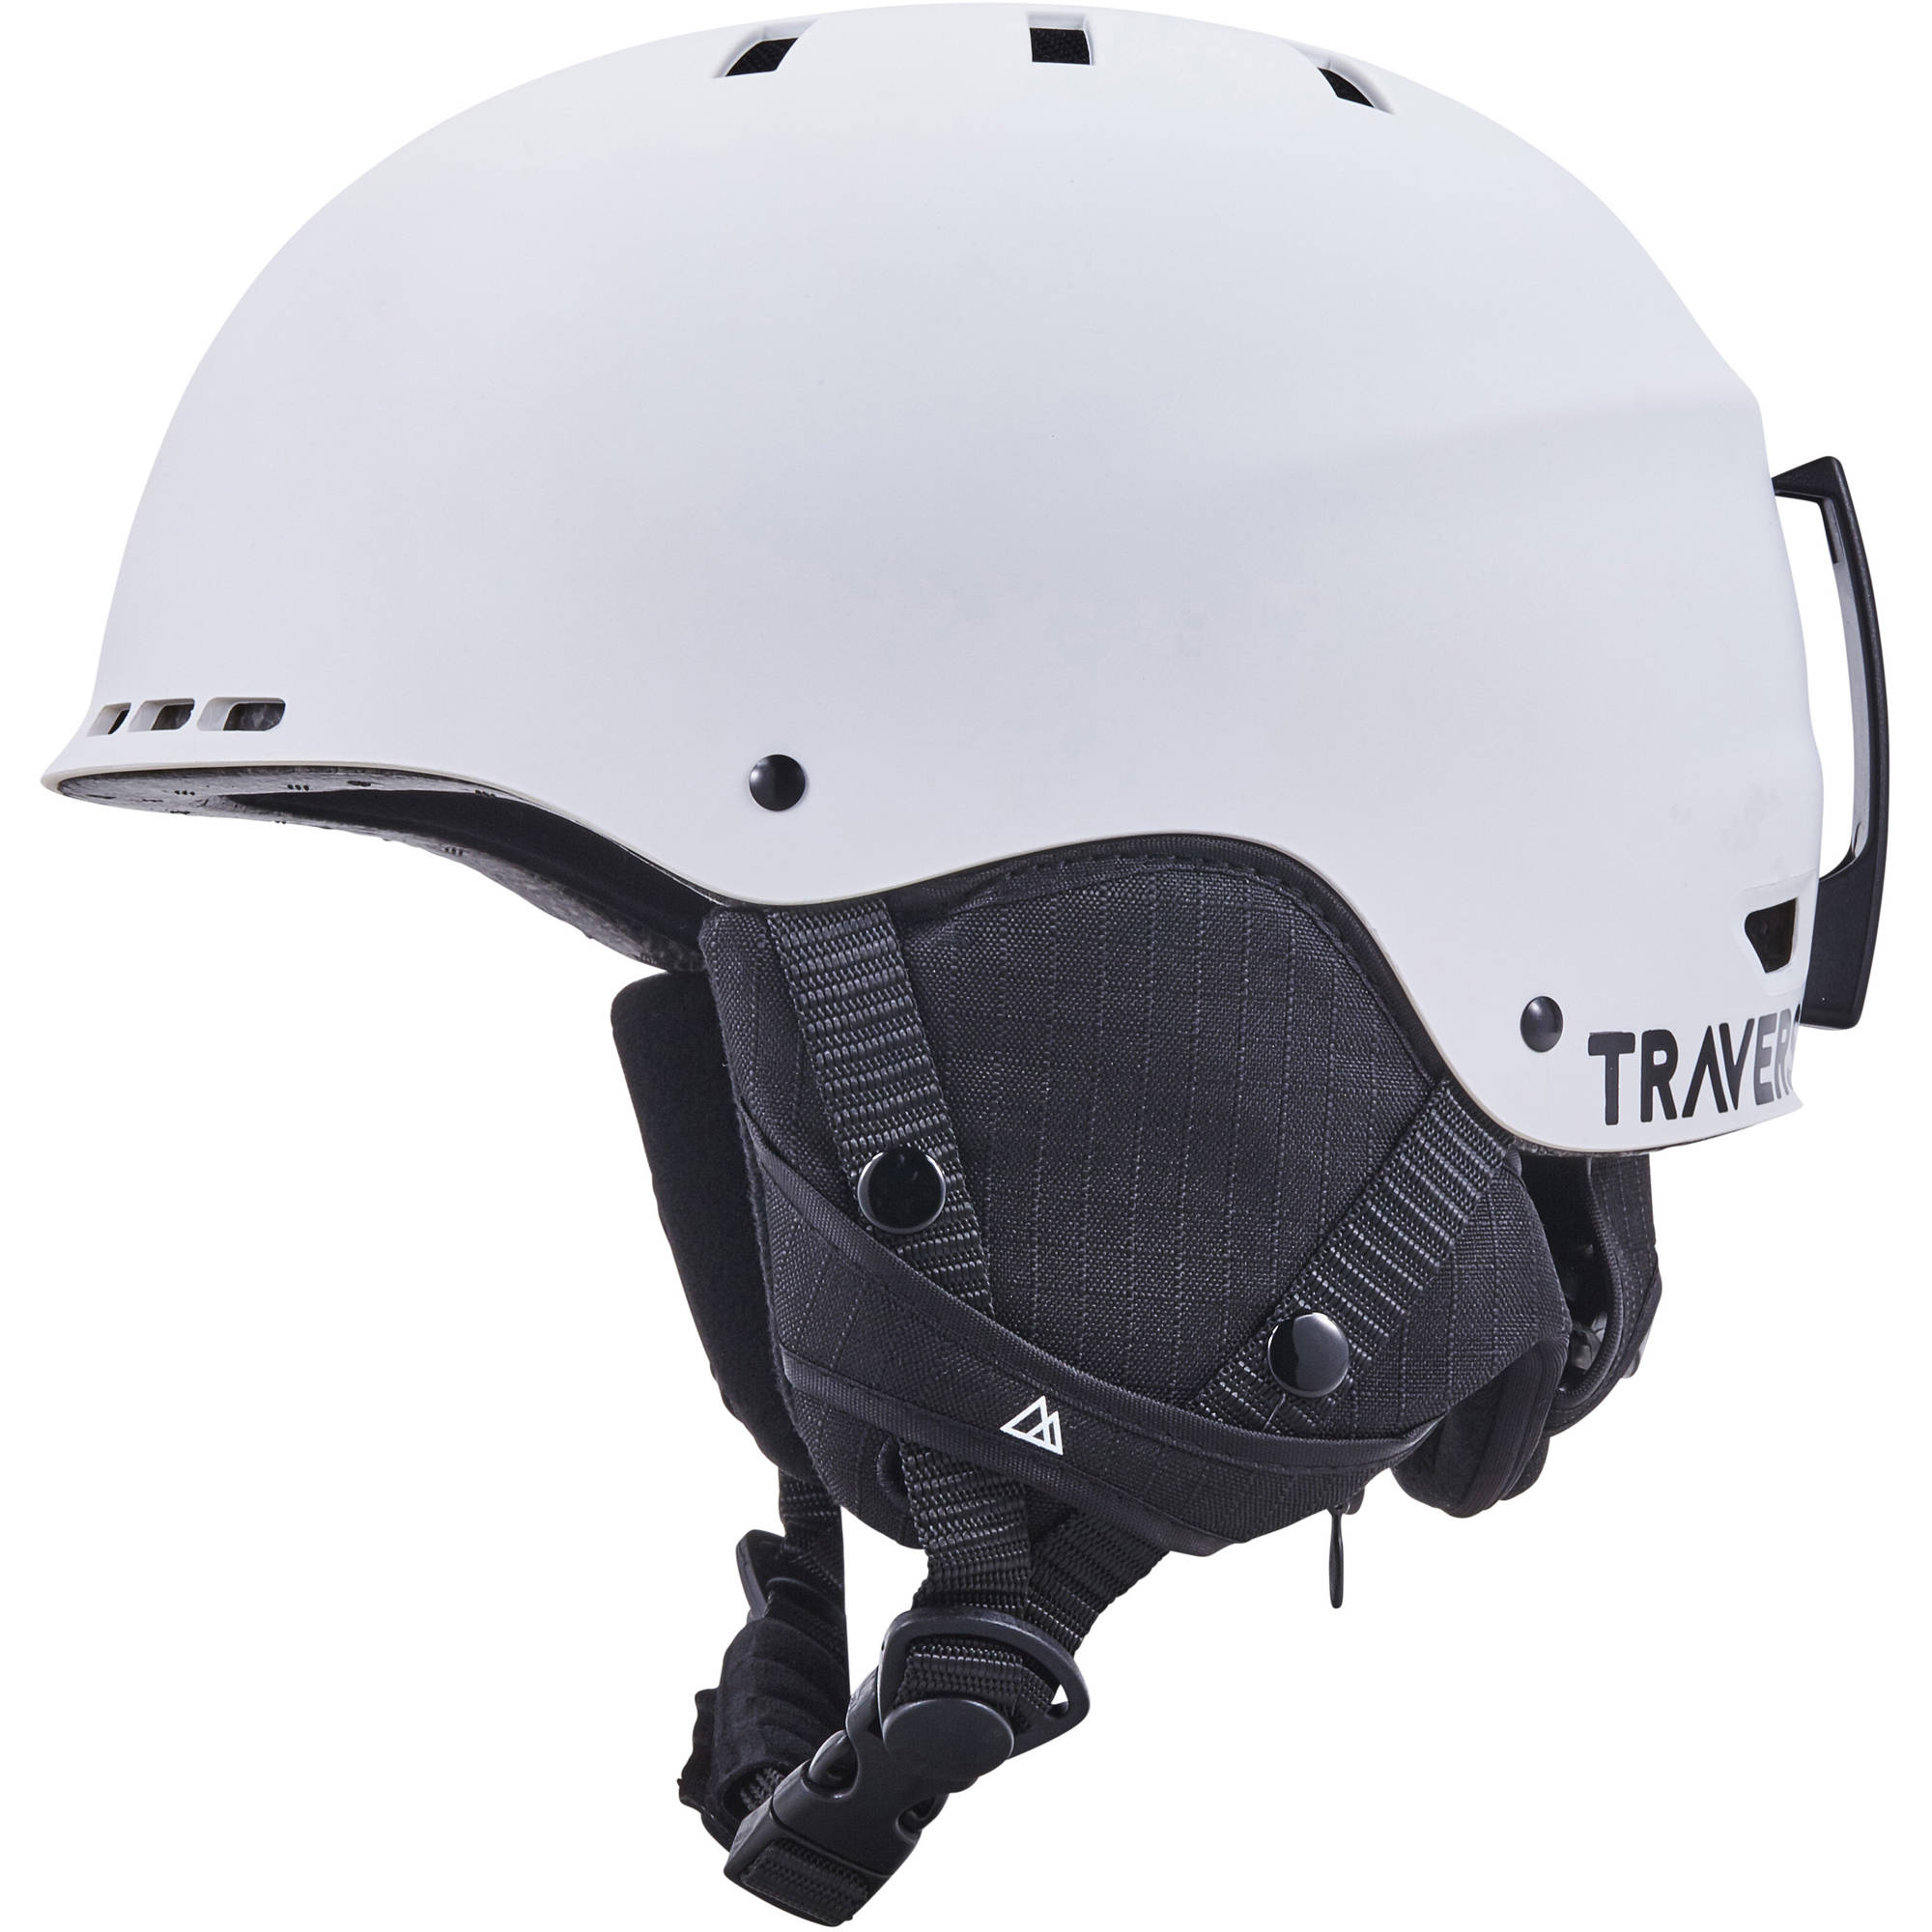 Traverse Vigilis Ski and Snowboard Helmet, Multiple Colors and Sizes Available